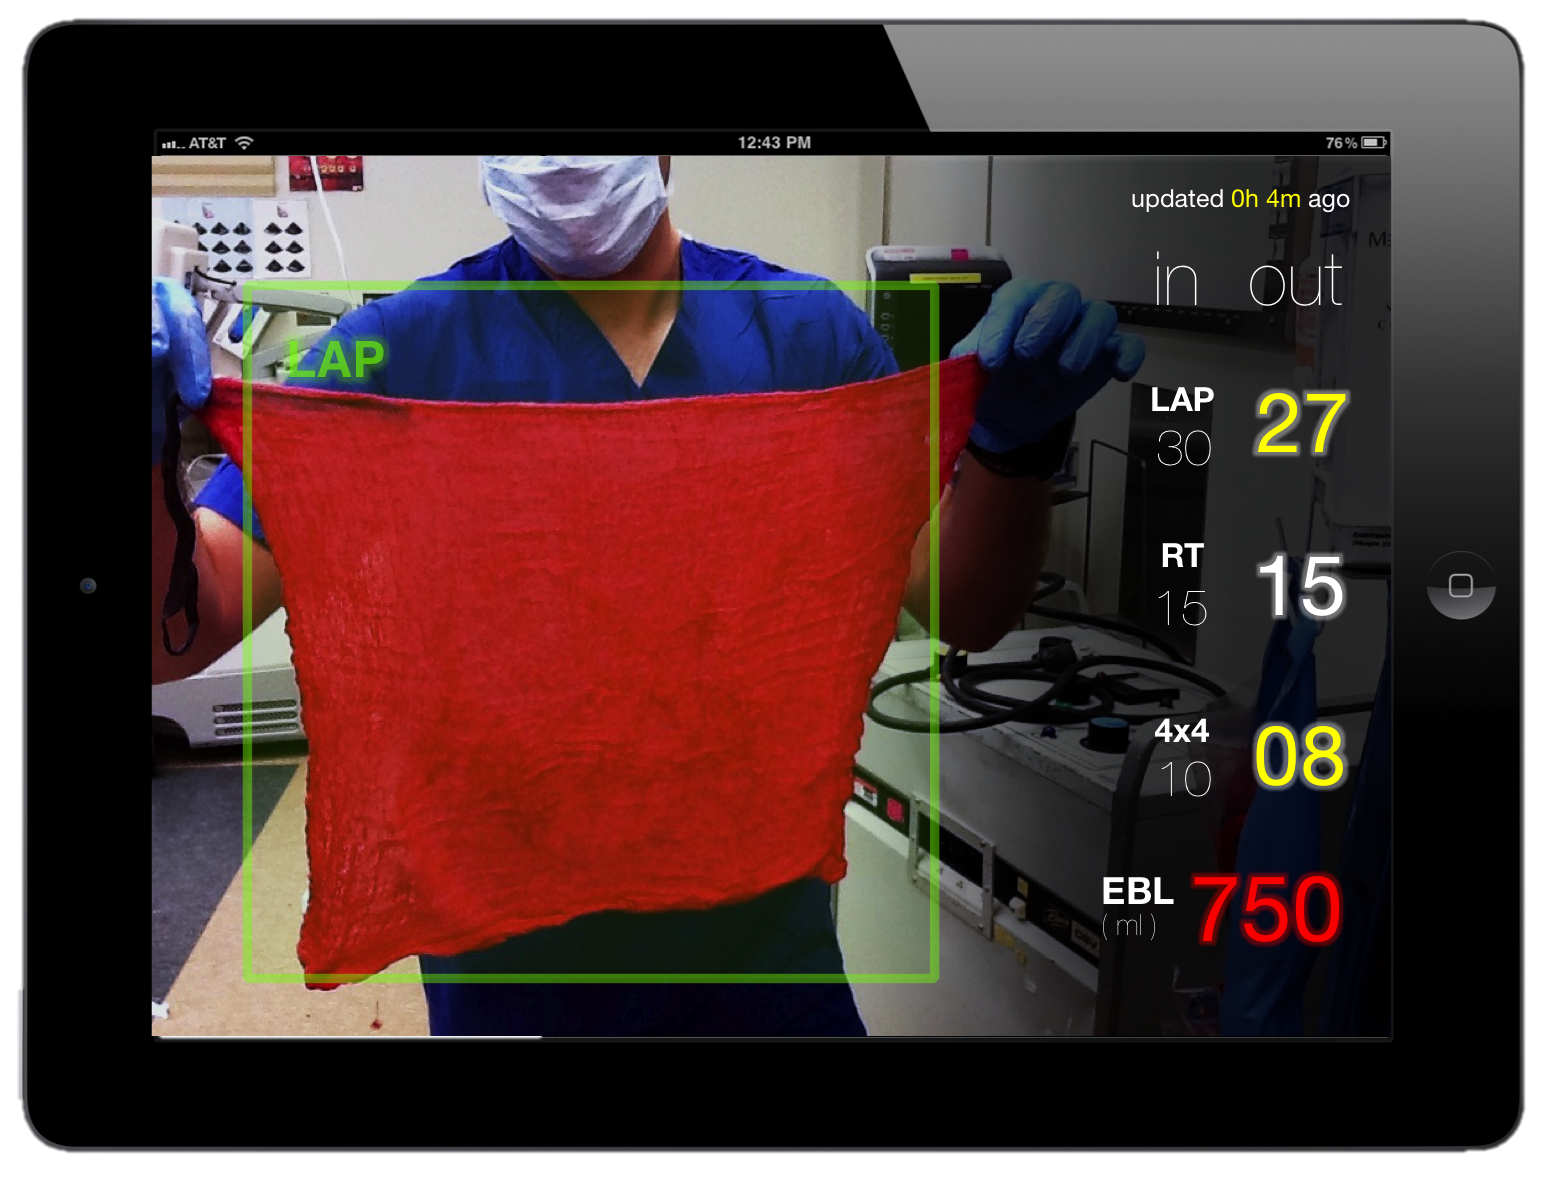 FDA approves Gauss Surgical's app that turns iPads into real-time surgical blood loss monitors